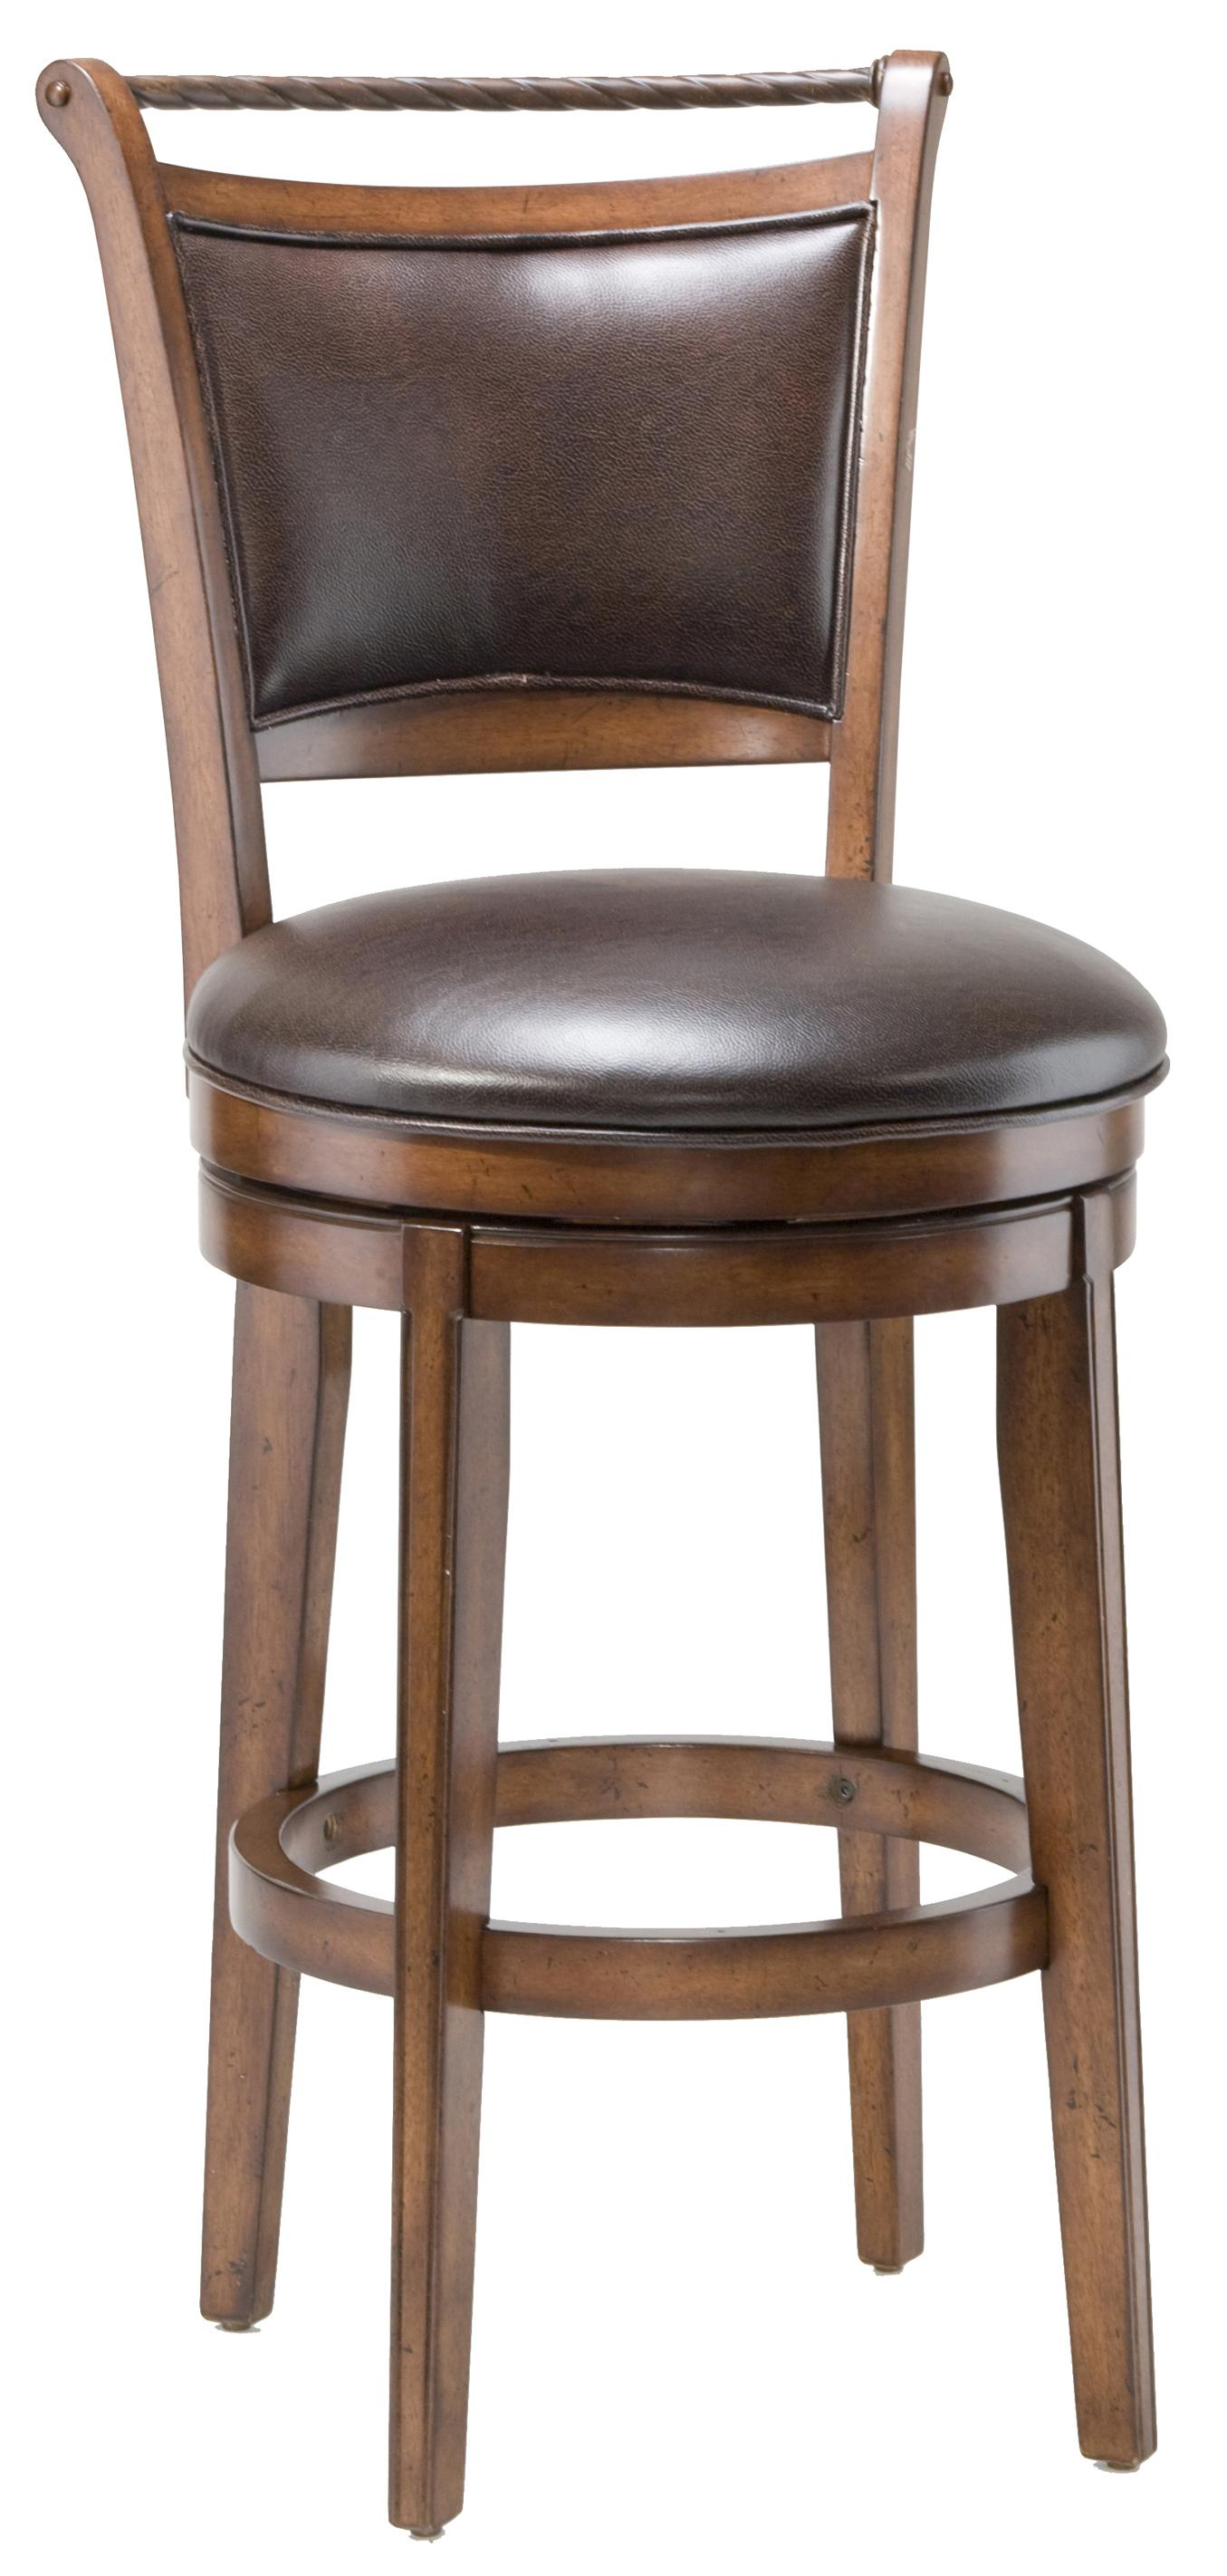 Wood stools 30 bar height calais swivel stool by for Counter height swivel bar stools